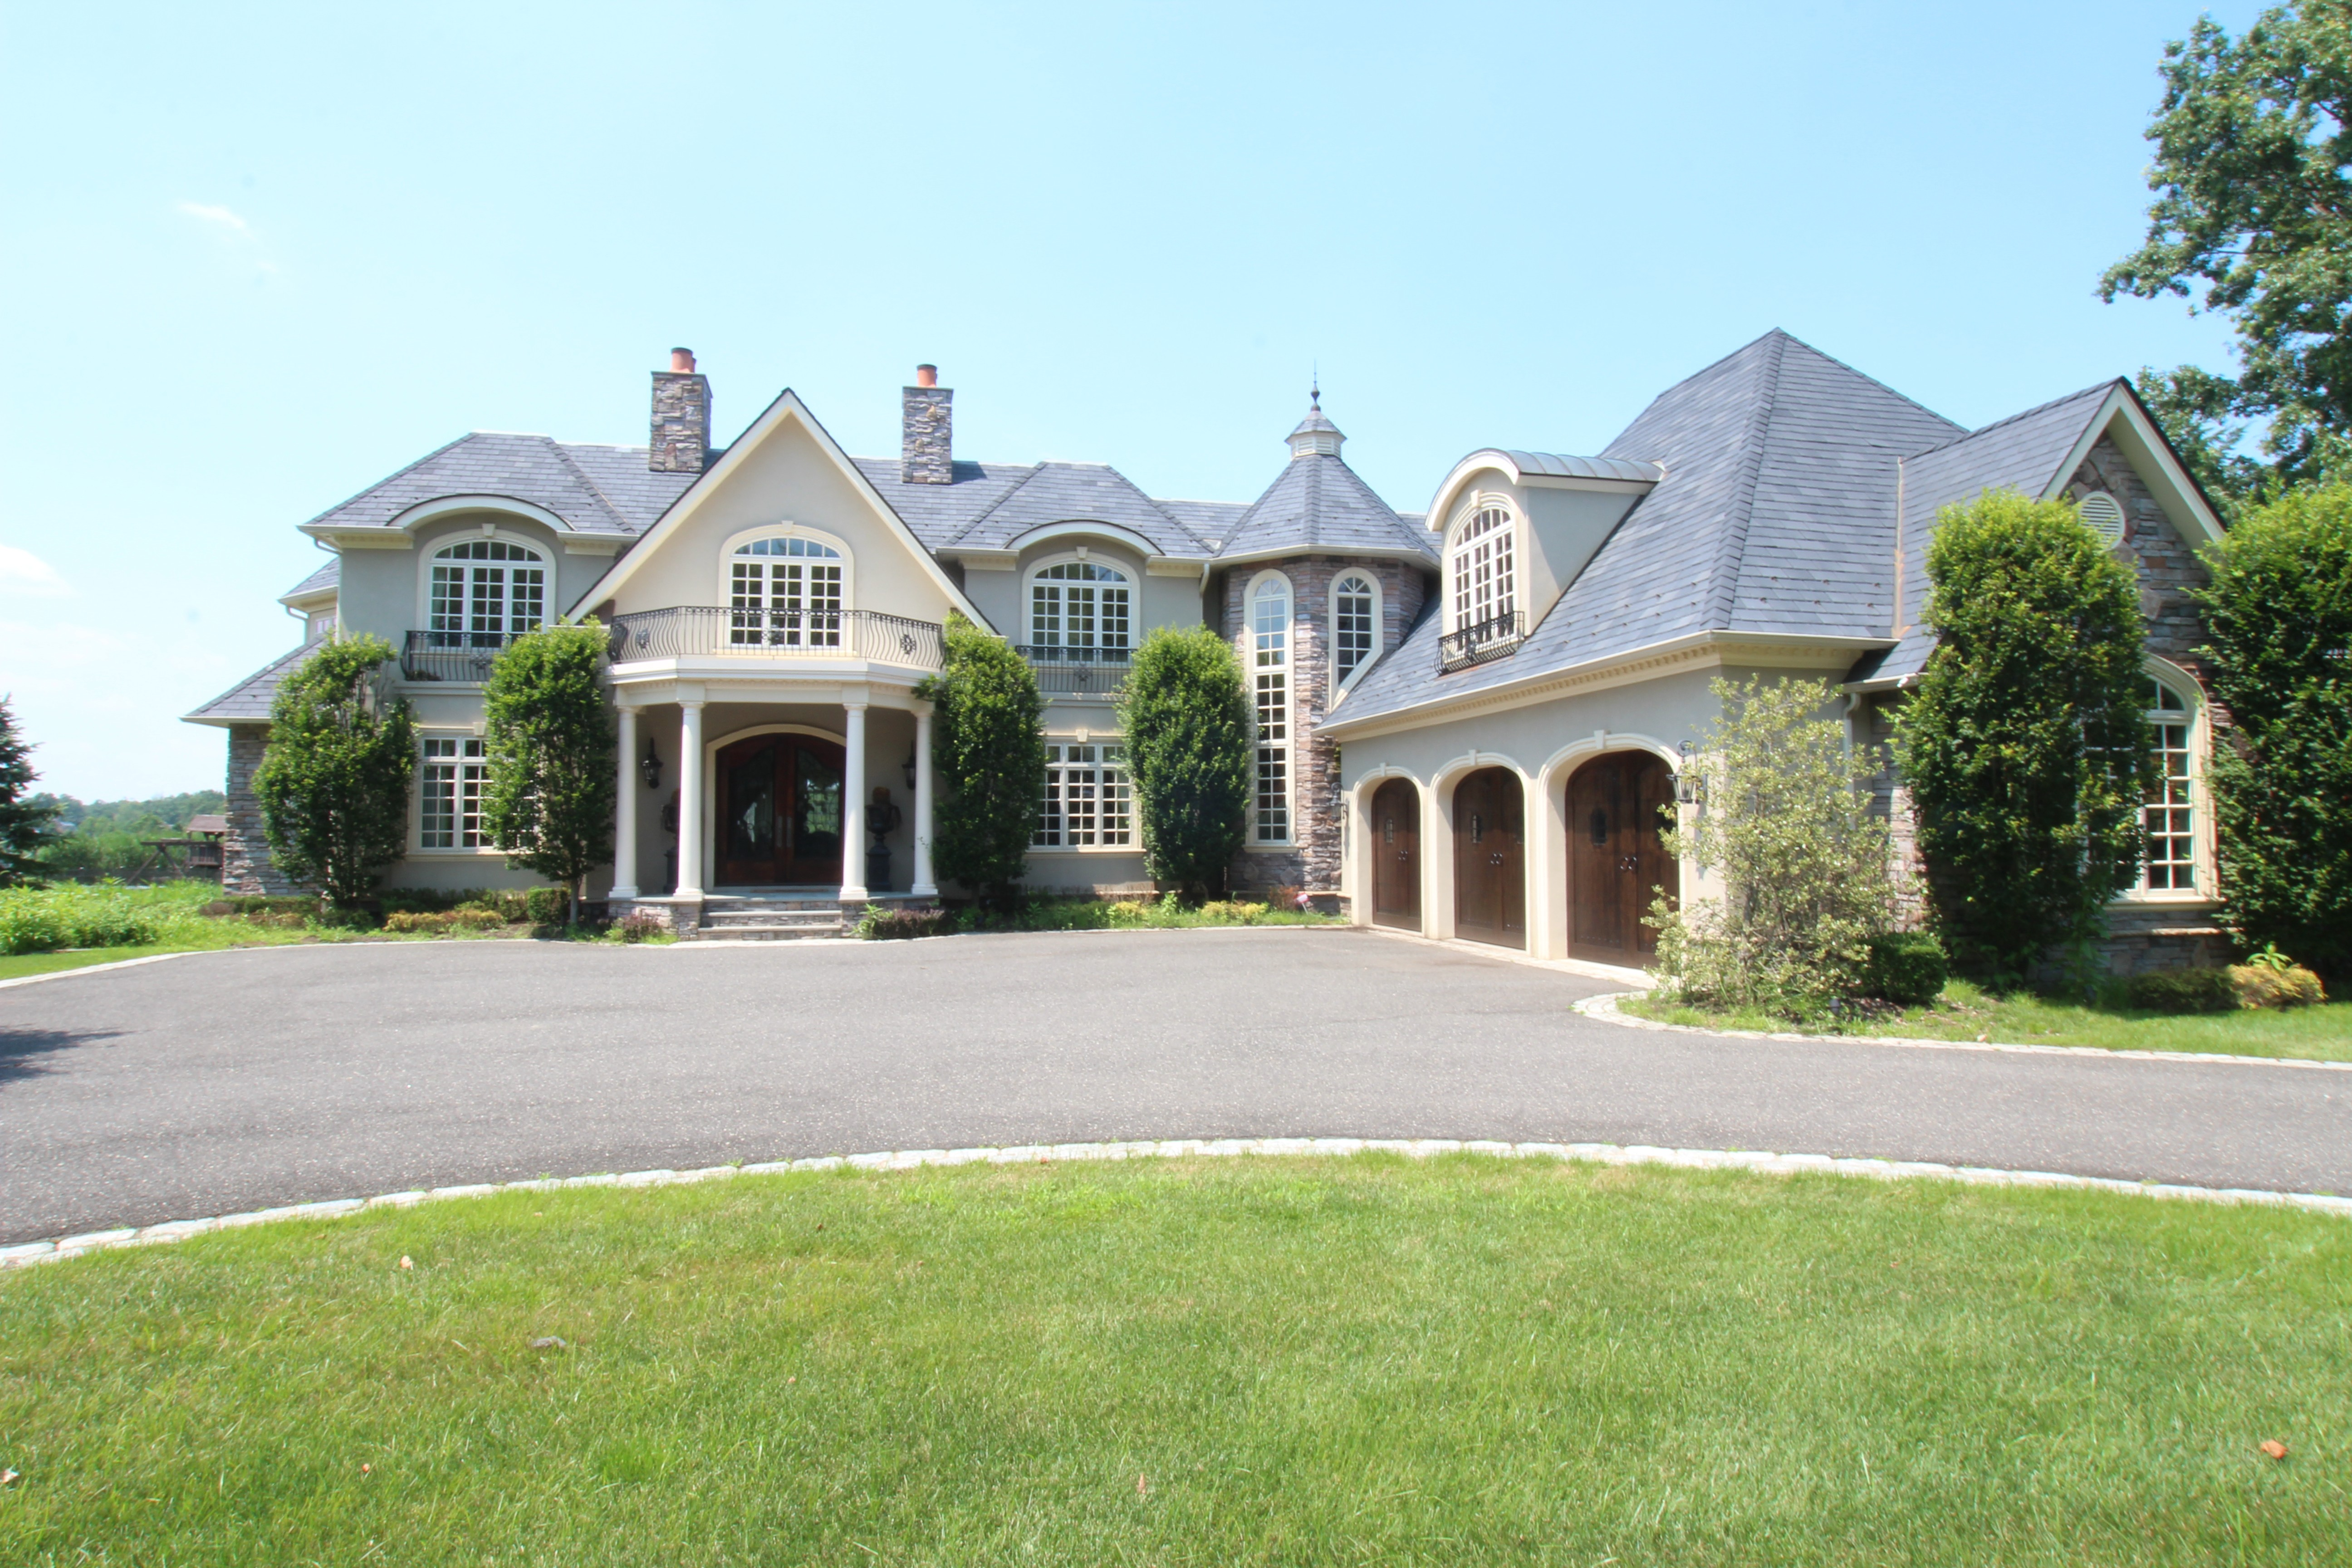 monmouth county custom home builder design build pros - Home Builder Design